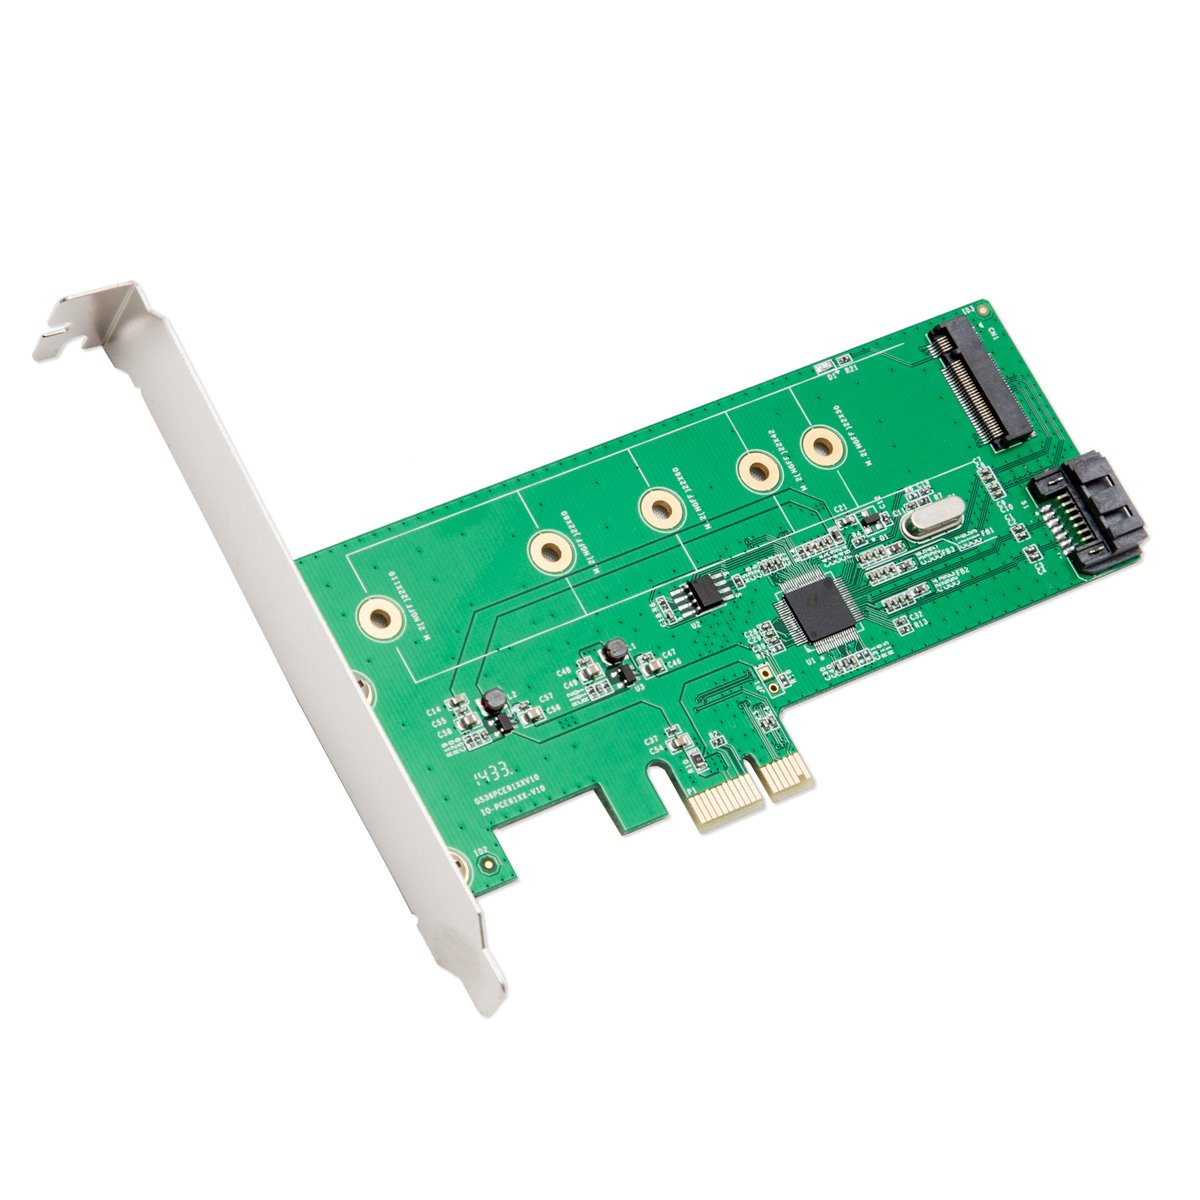 I/O Crest M.2 NGFF SDD + SATA III Port PCIe X1 Controller Card Components Other SI-PEX50069 by IO Crest